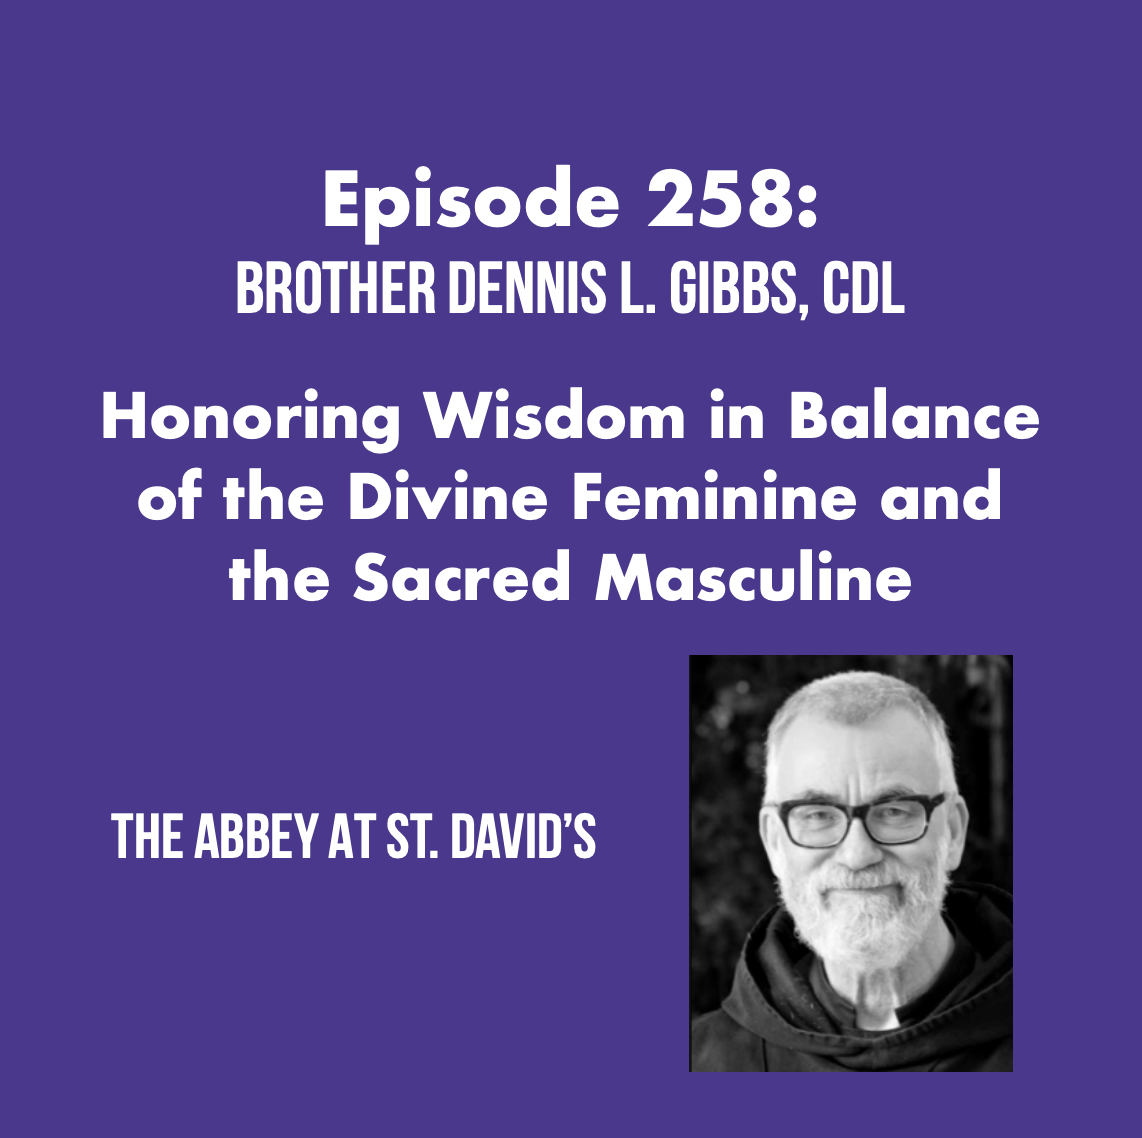 Episode 258: Honoring Wisdom in Balance of the Divine Feminine and the Sacred Masculine with Brother Dennis L. Gibbs, CDL